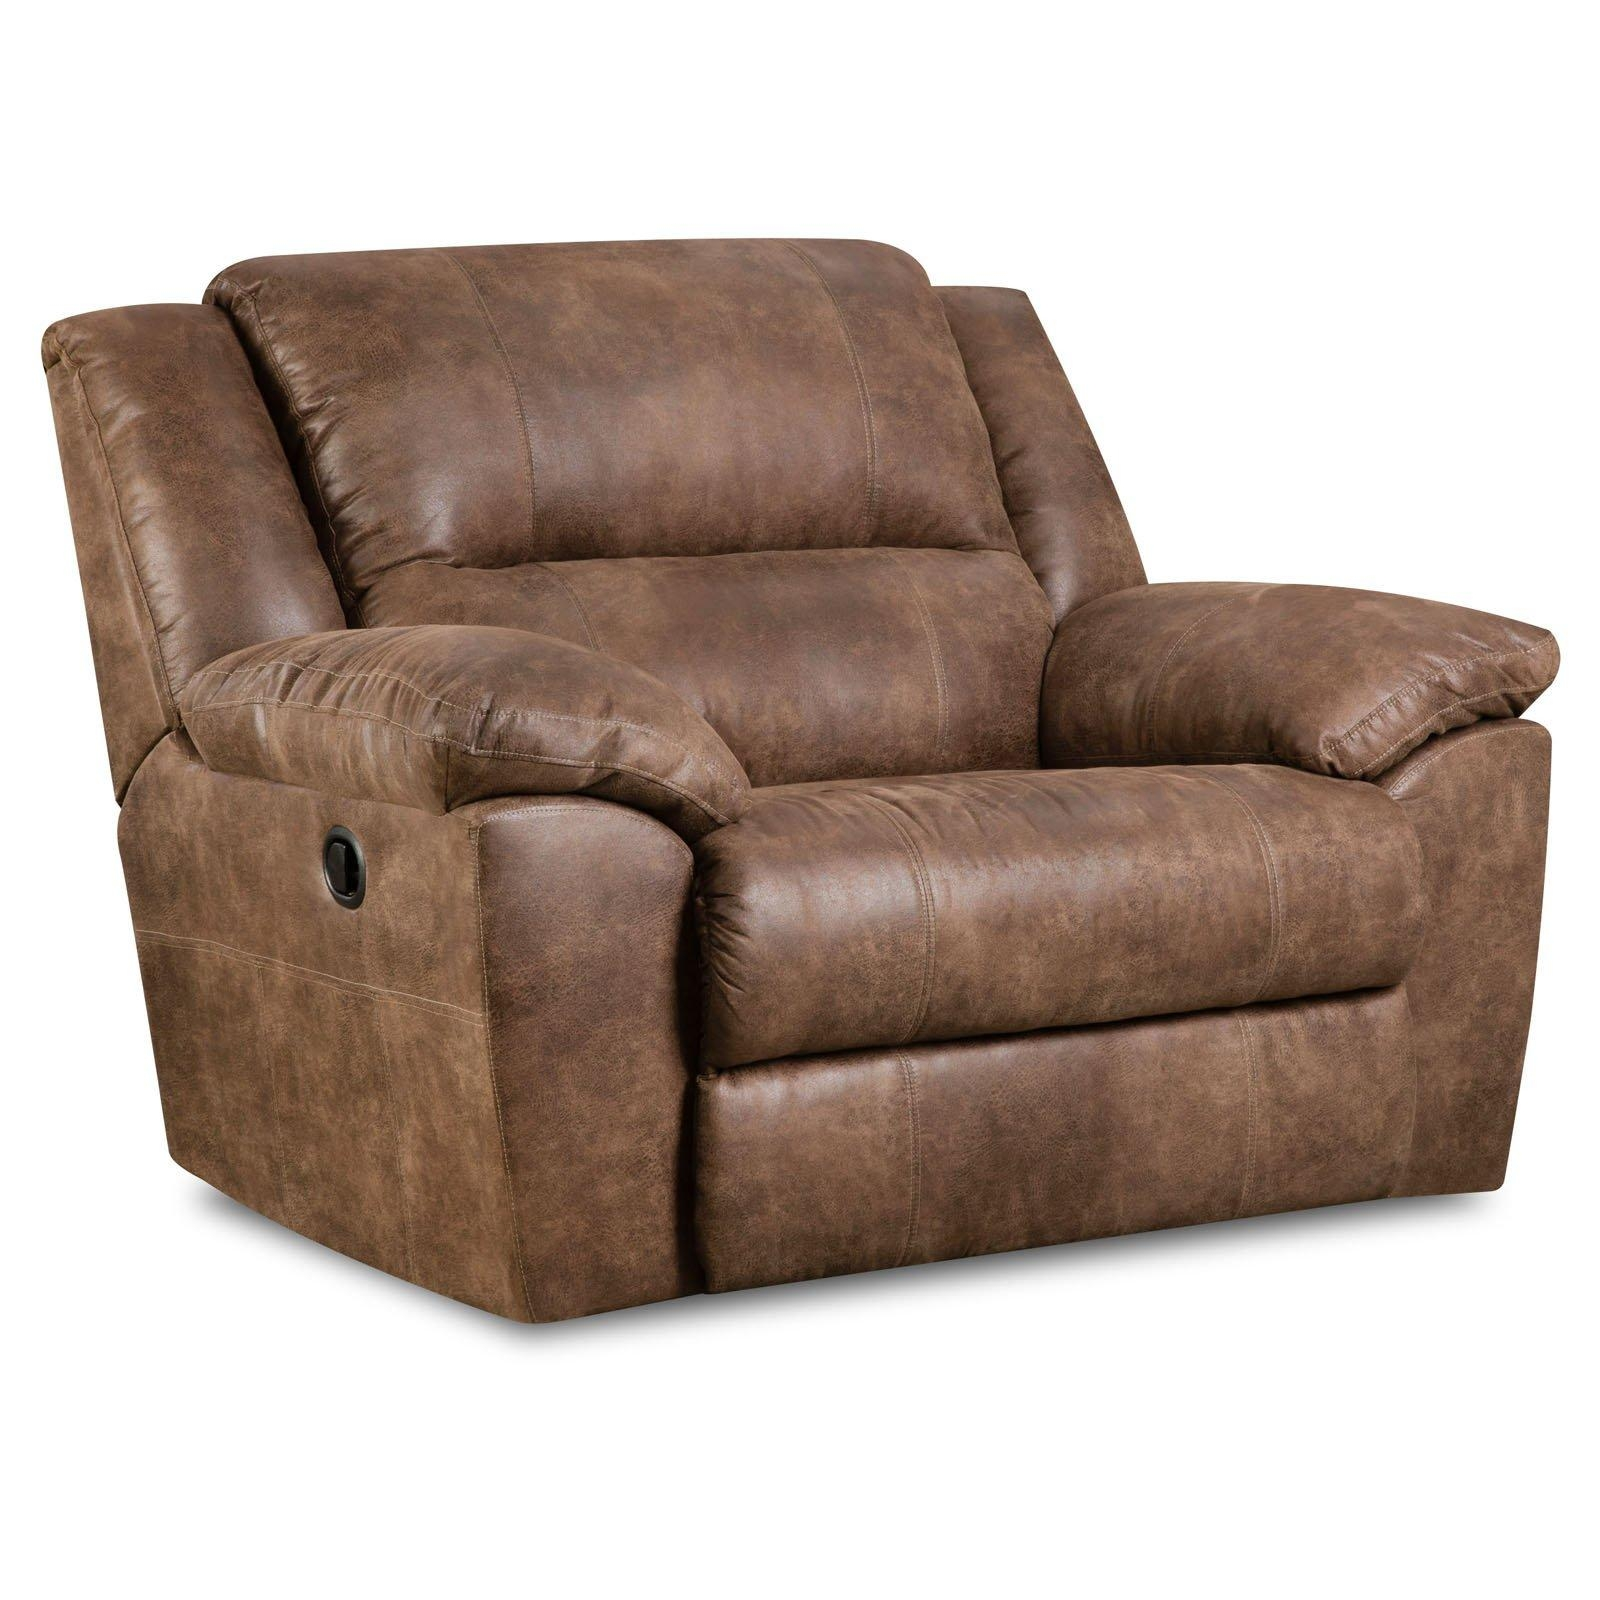 Simmons Upholstery Phoenix Double Motion Sofa – Mocha | Hayneedle Throughout Simmons Leather Sofas (Image 15 of 20)